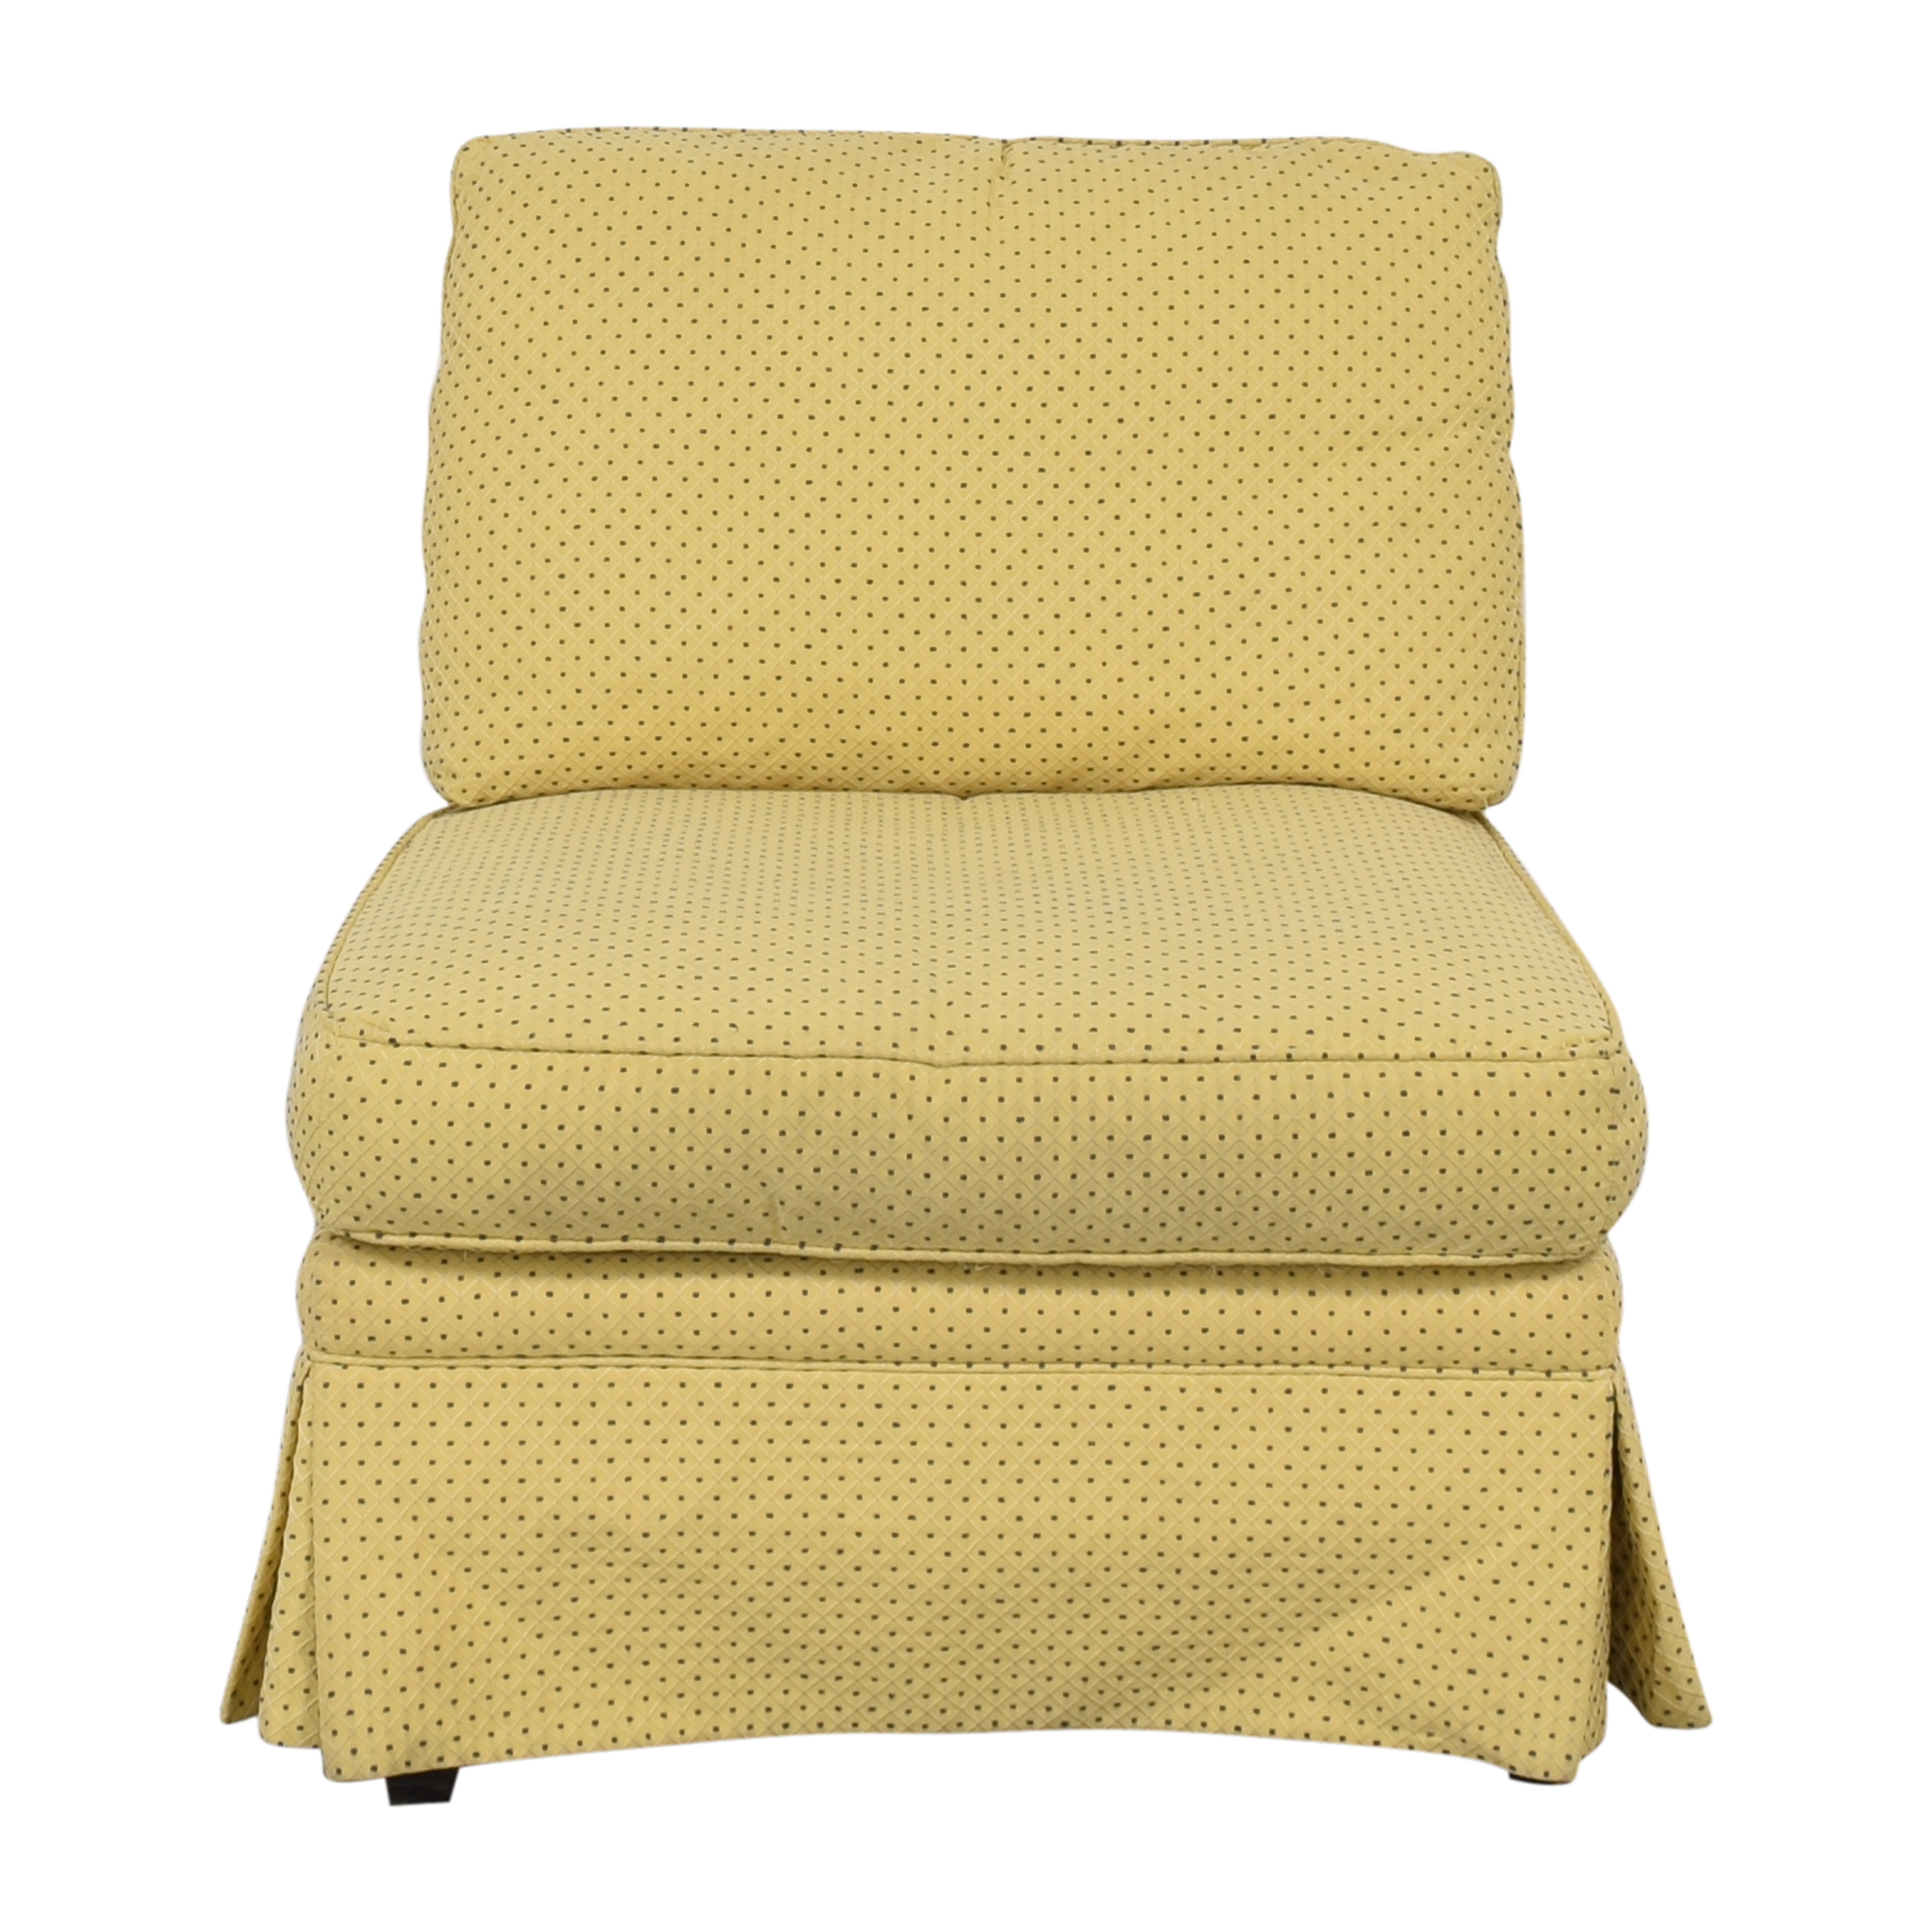 Sherrill Furniture Sherrill Furniture Upholstered Chair